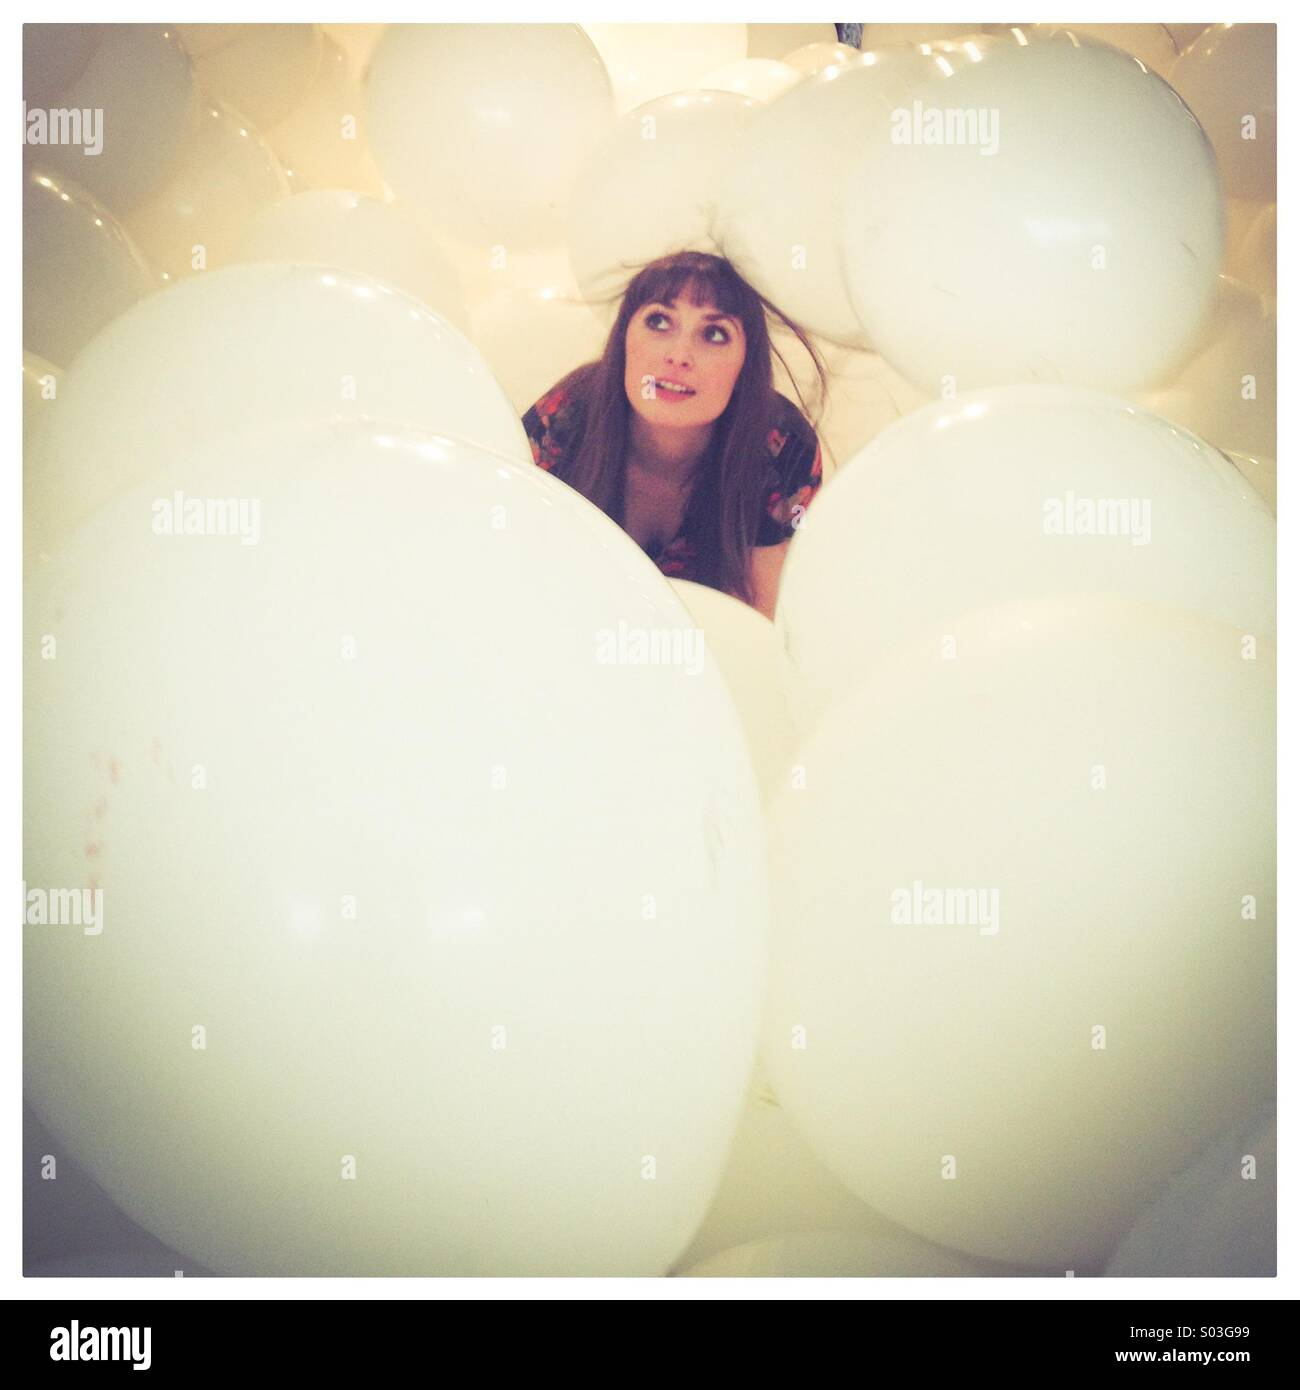 Girl in balloons - Stock Image